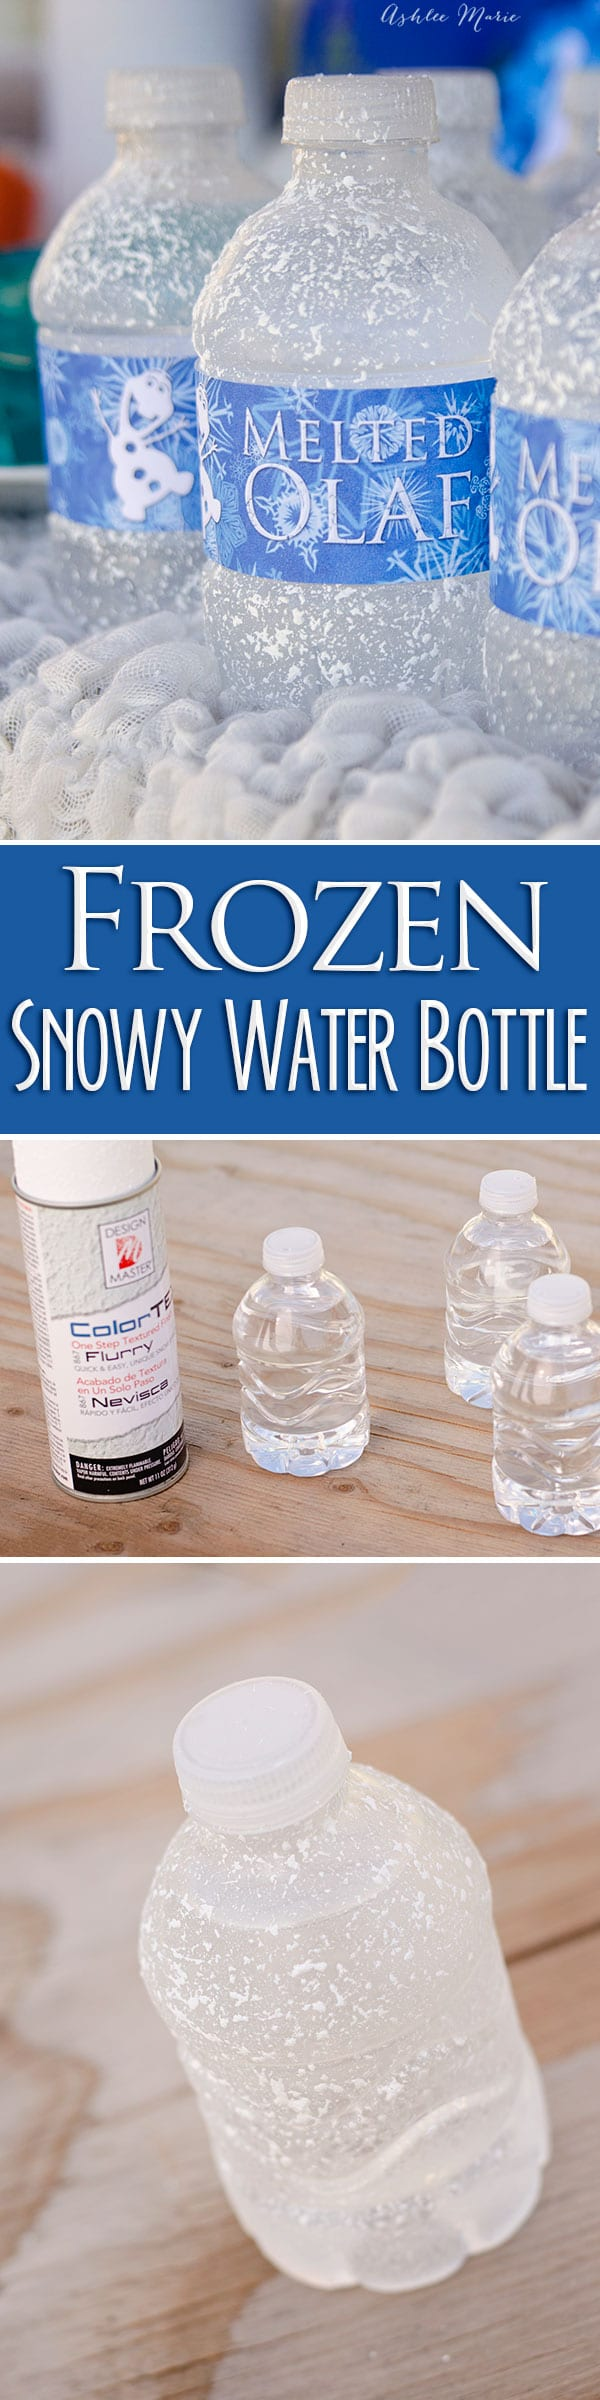 create frozen water bottles by adding texture to make them look snowy